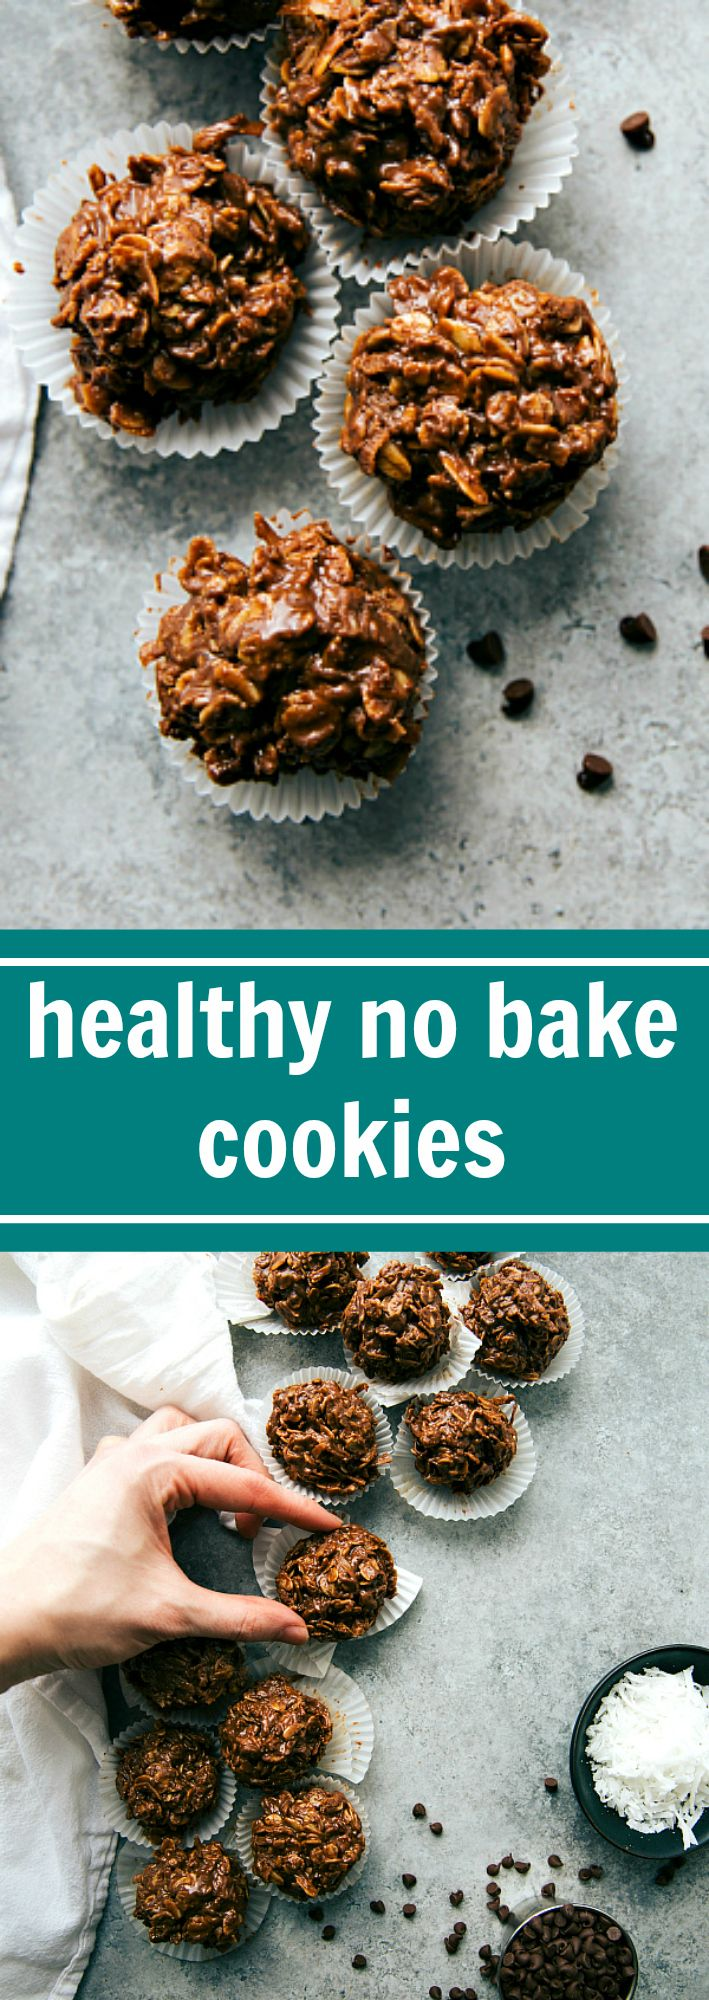 how to make no bake cookies demonstration speech So simple, so quick and easy and no-baking required these no-bake recipes are delicious and only require a little bit of patience as they chill in the fridge.